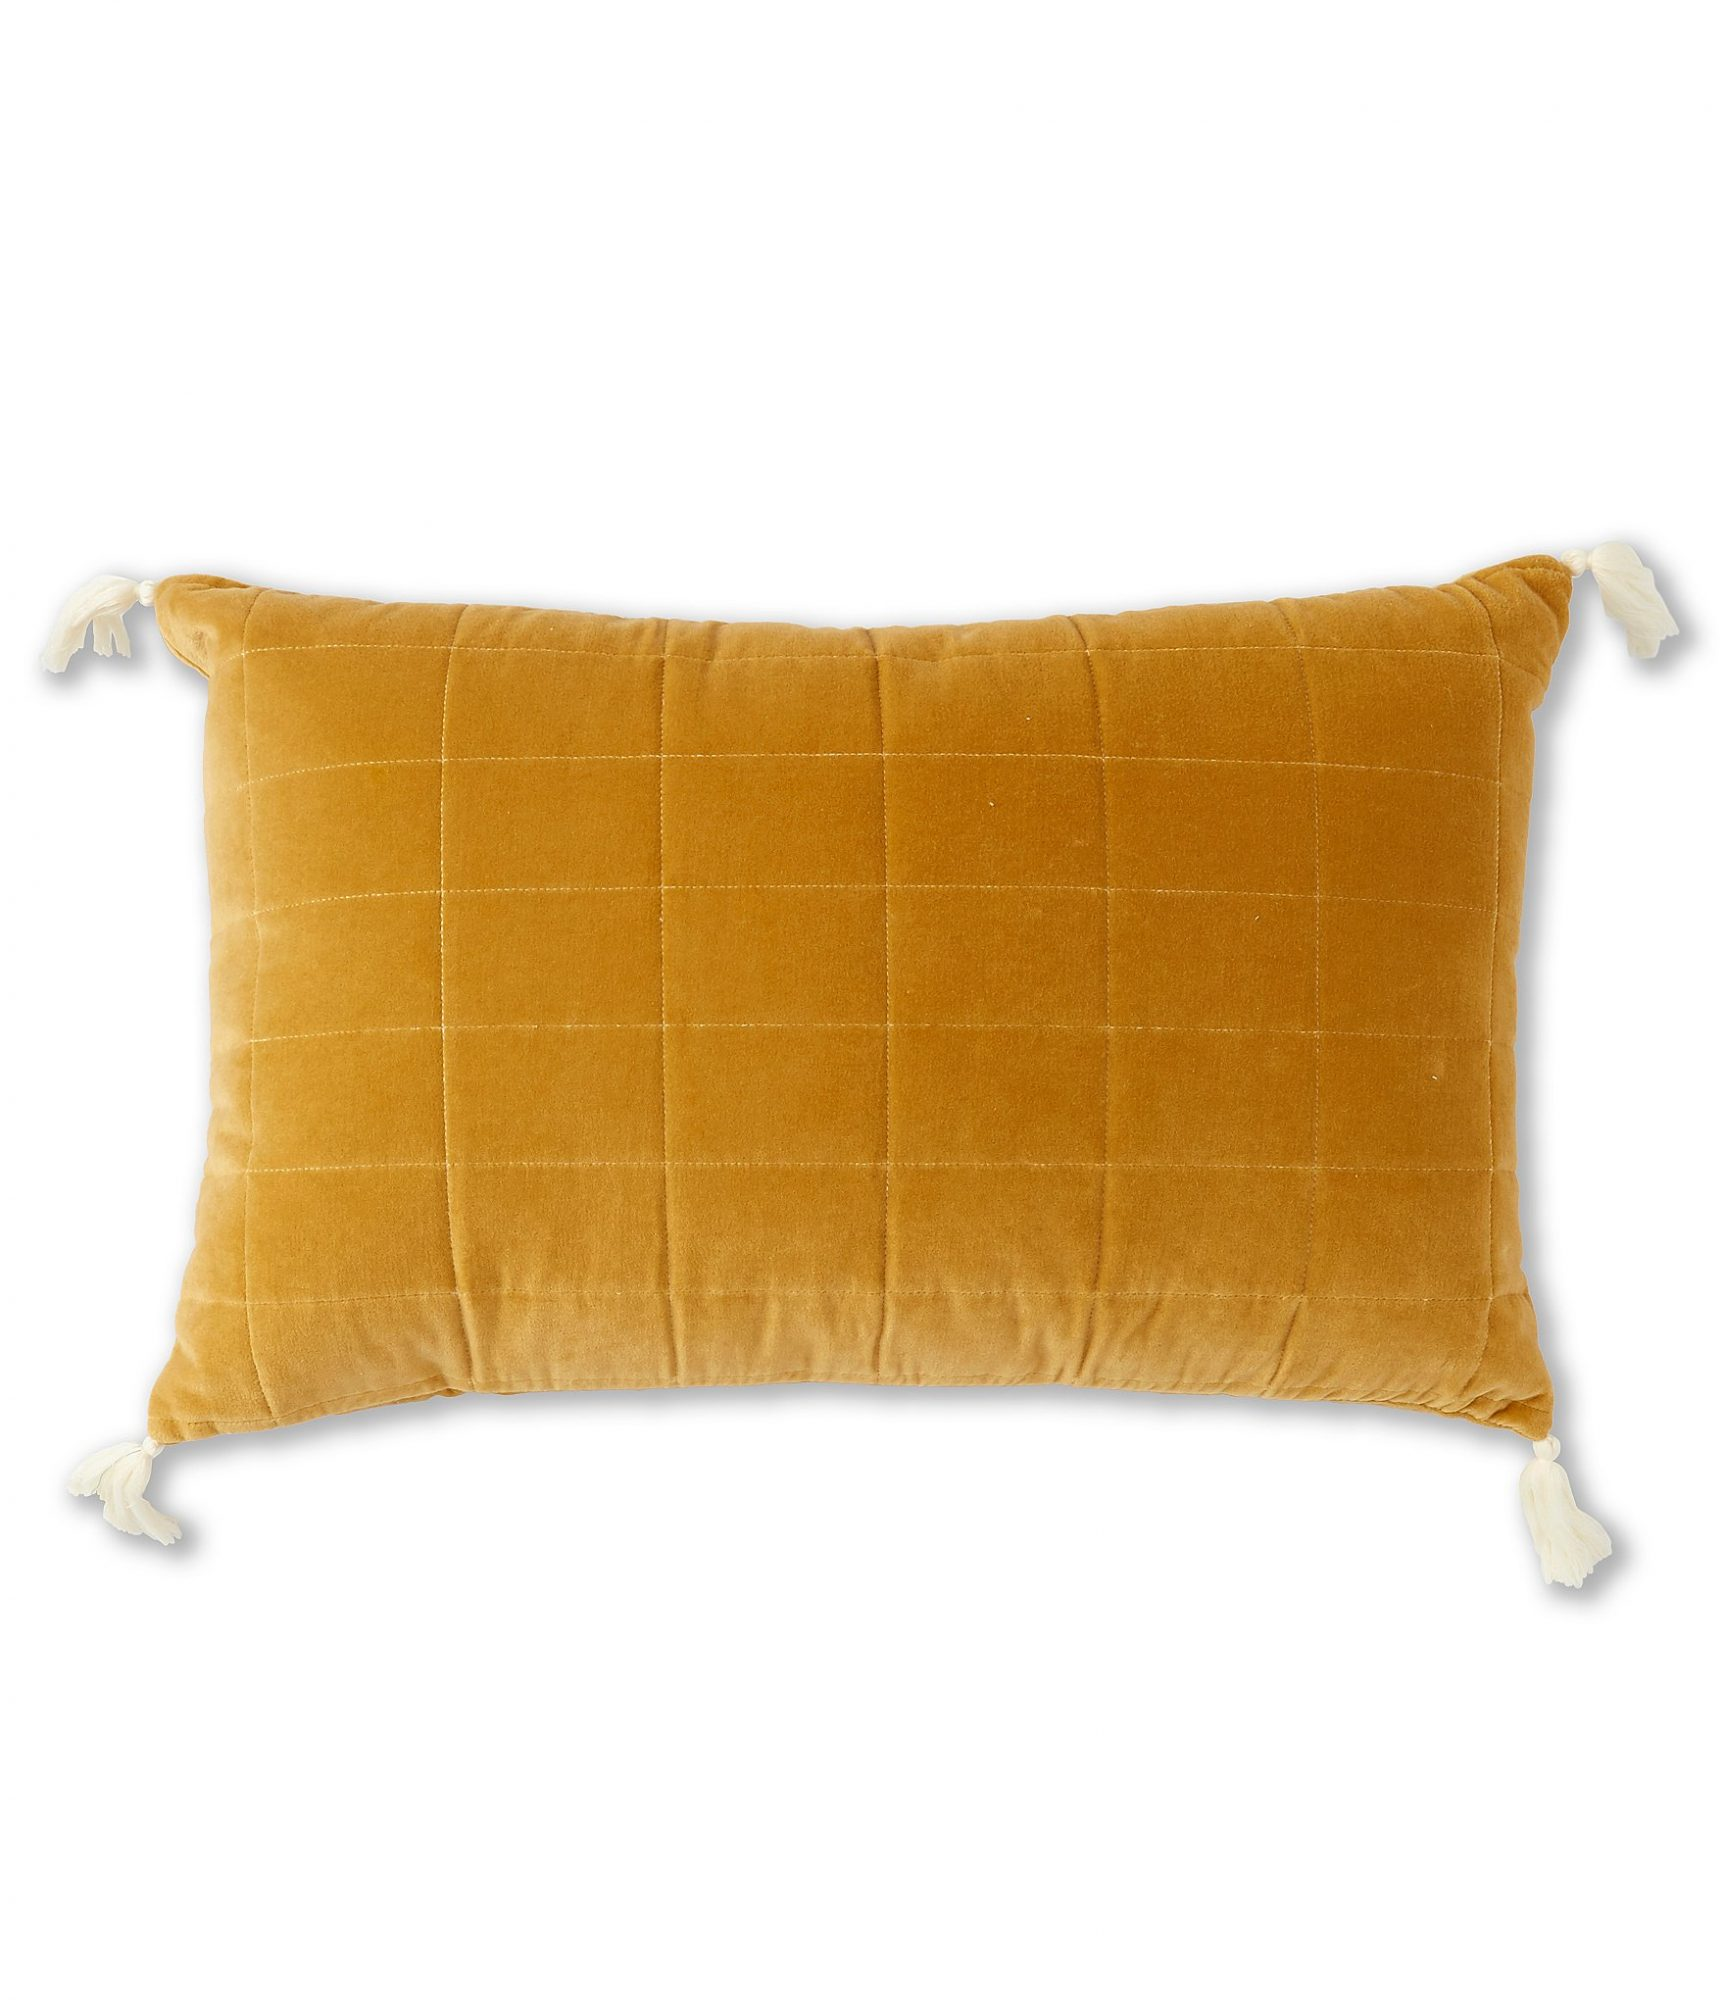 BUY IT: $39; dillards.com If you're not crazy about bold colors and patterns, warm up your space for fall with a gold velvet pillow.